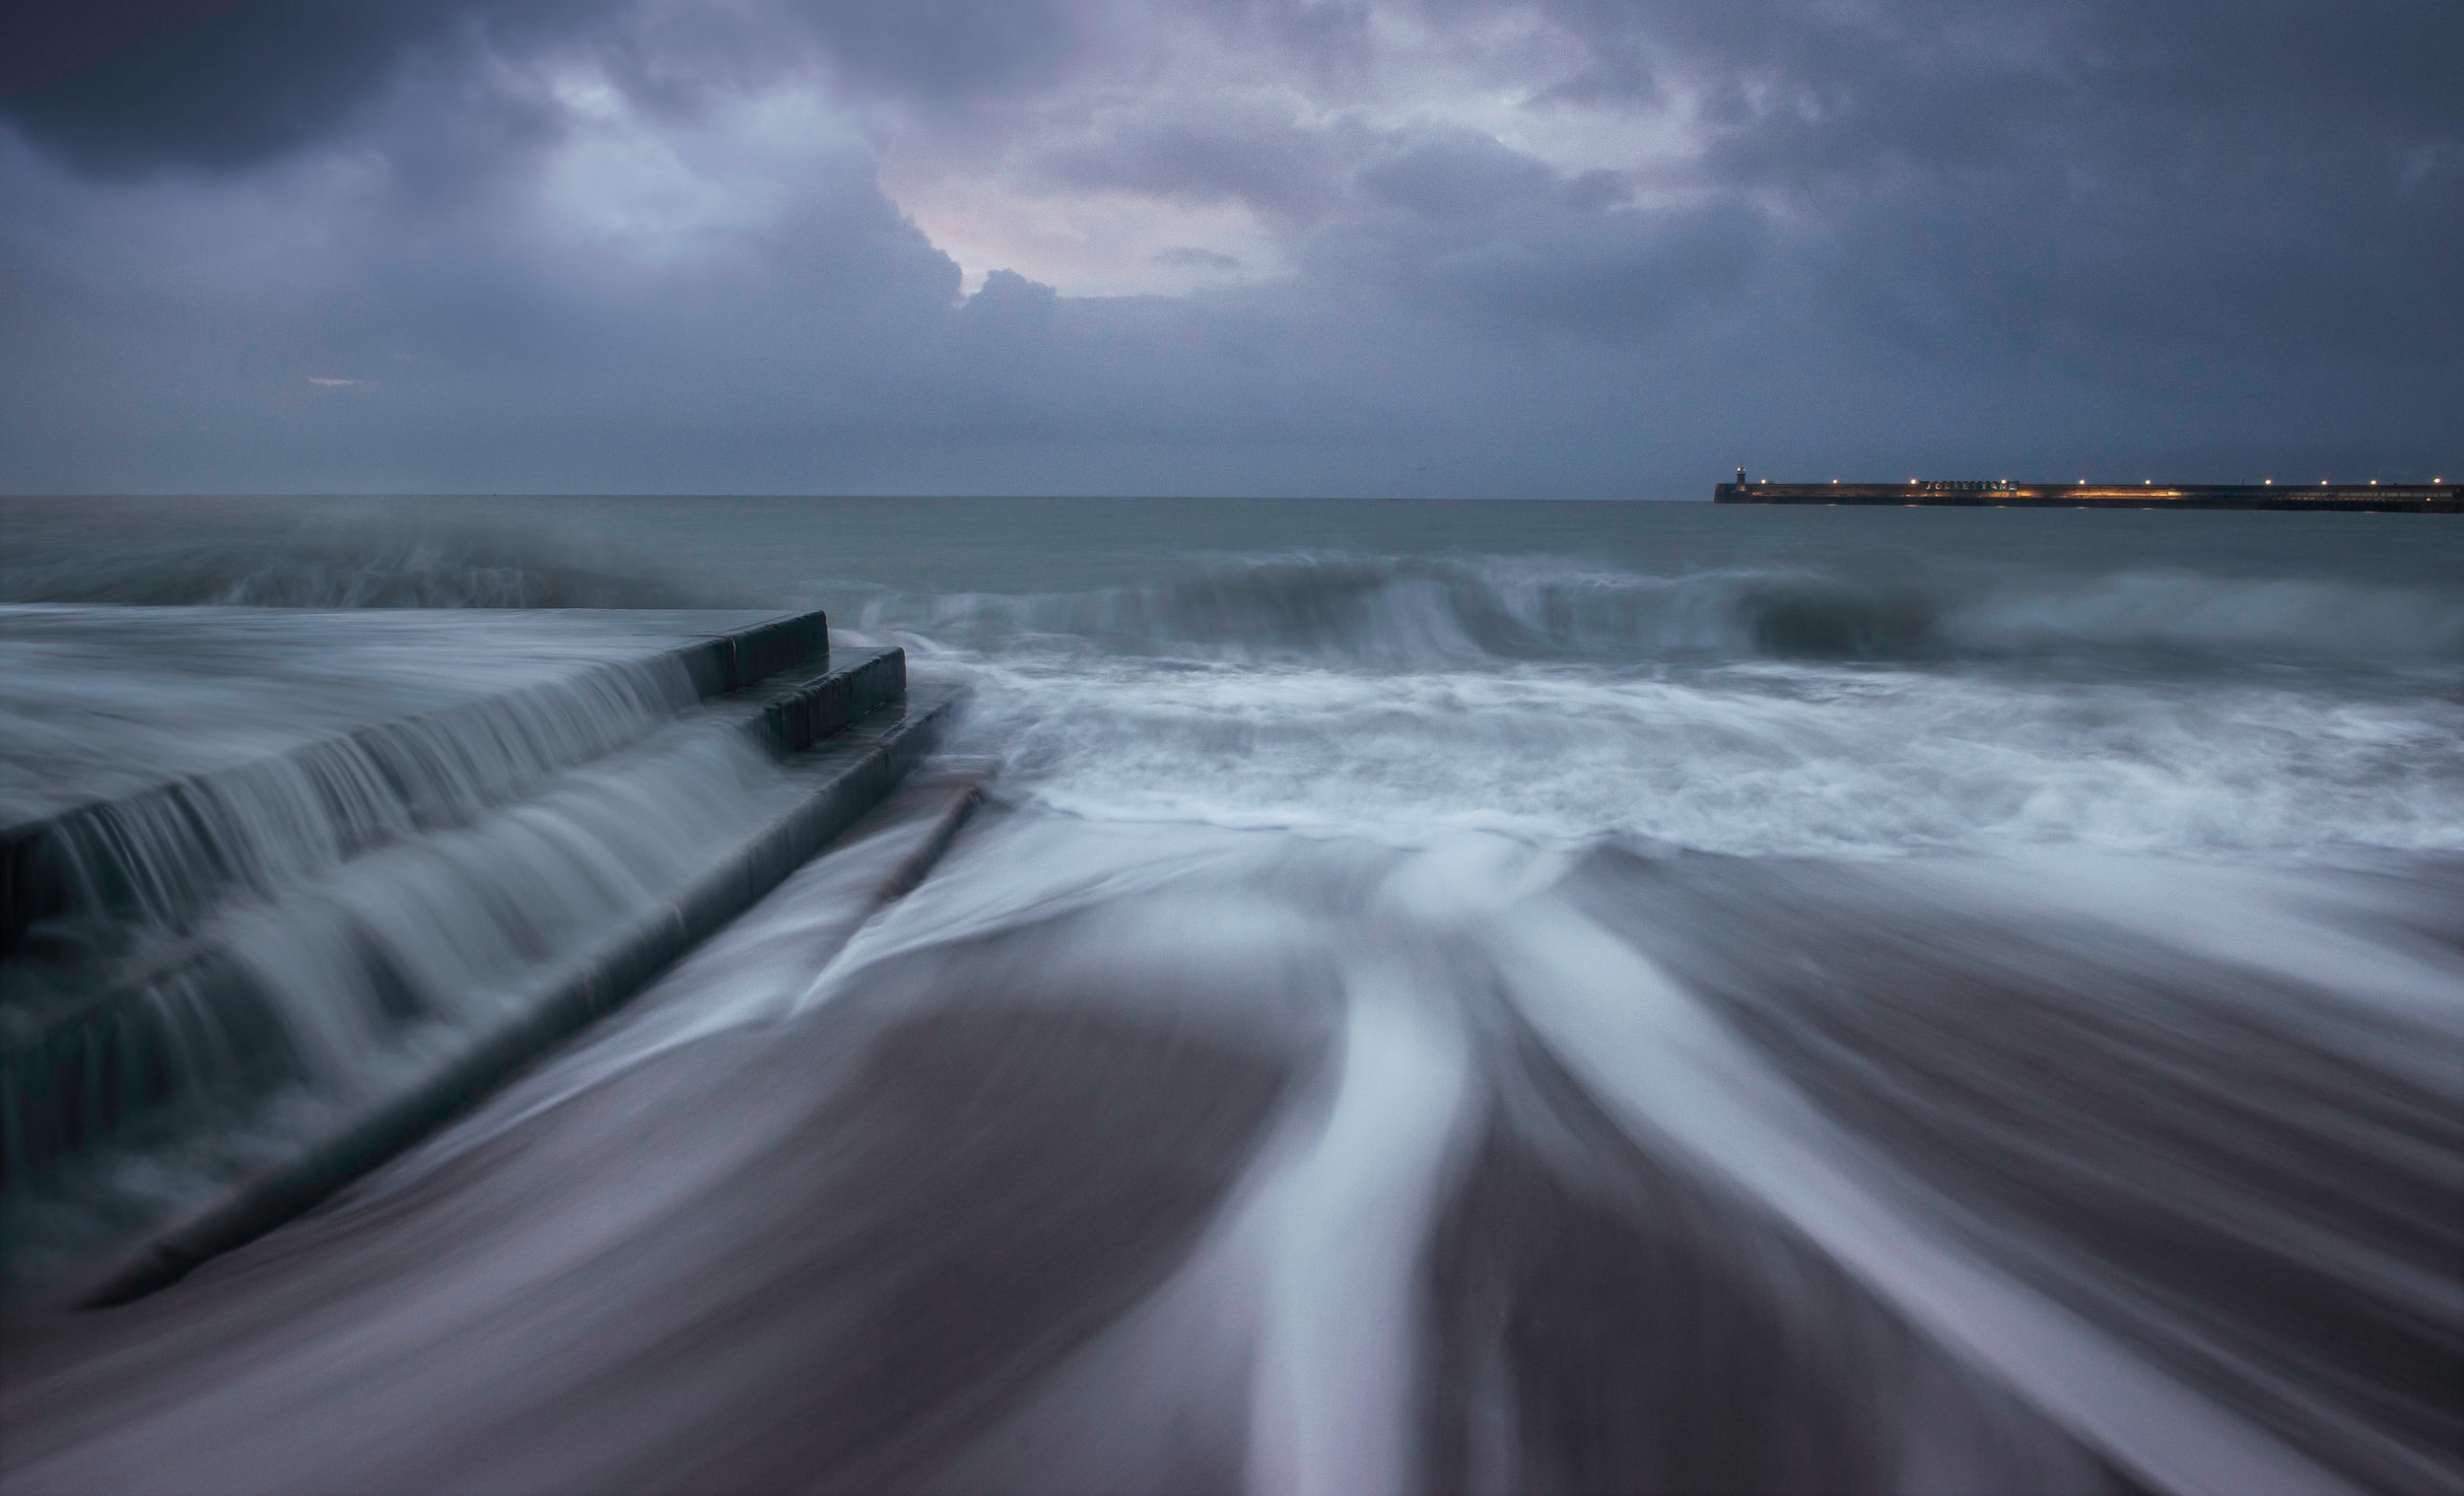 2018.12.03-Folkestone-Waves-at-Dawn-v2-3091x1877.jpg